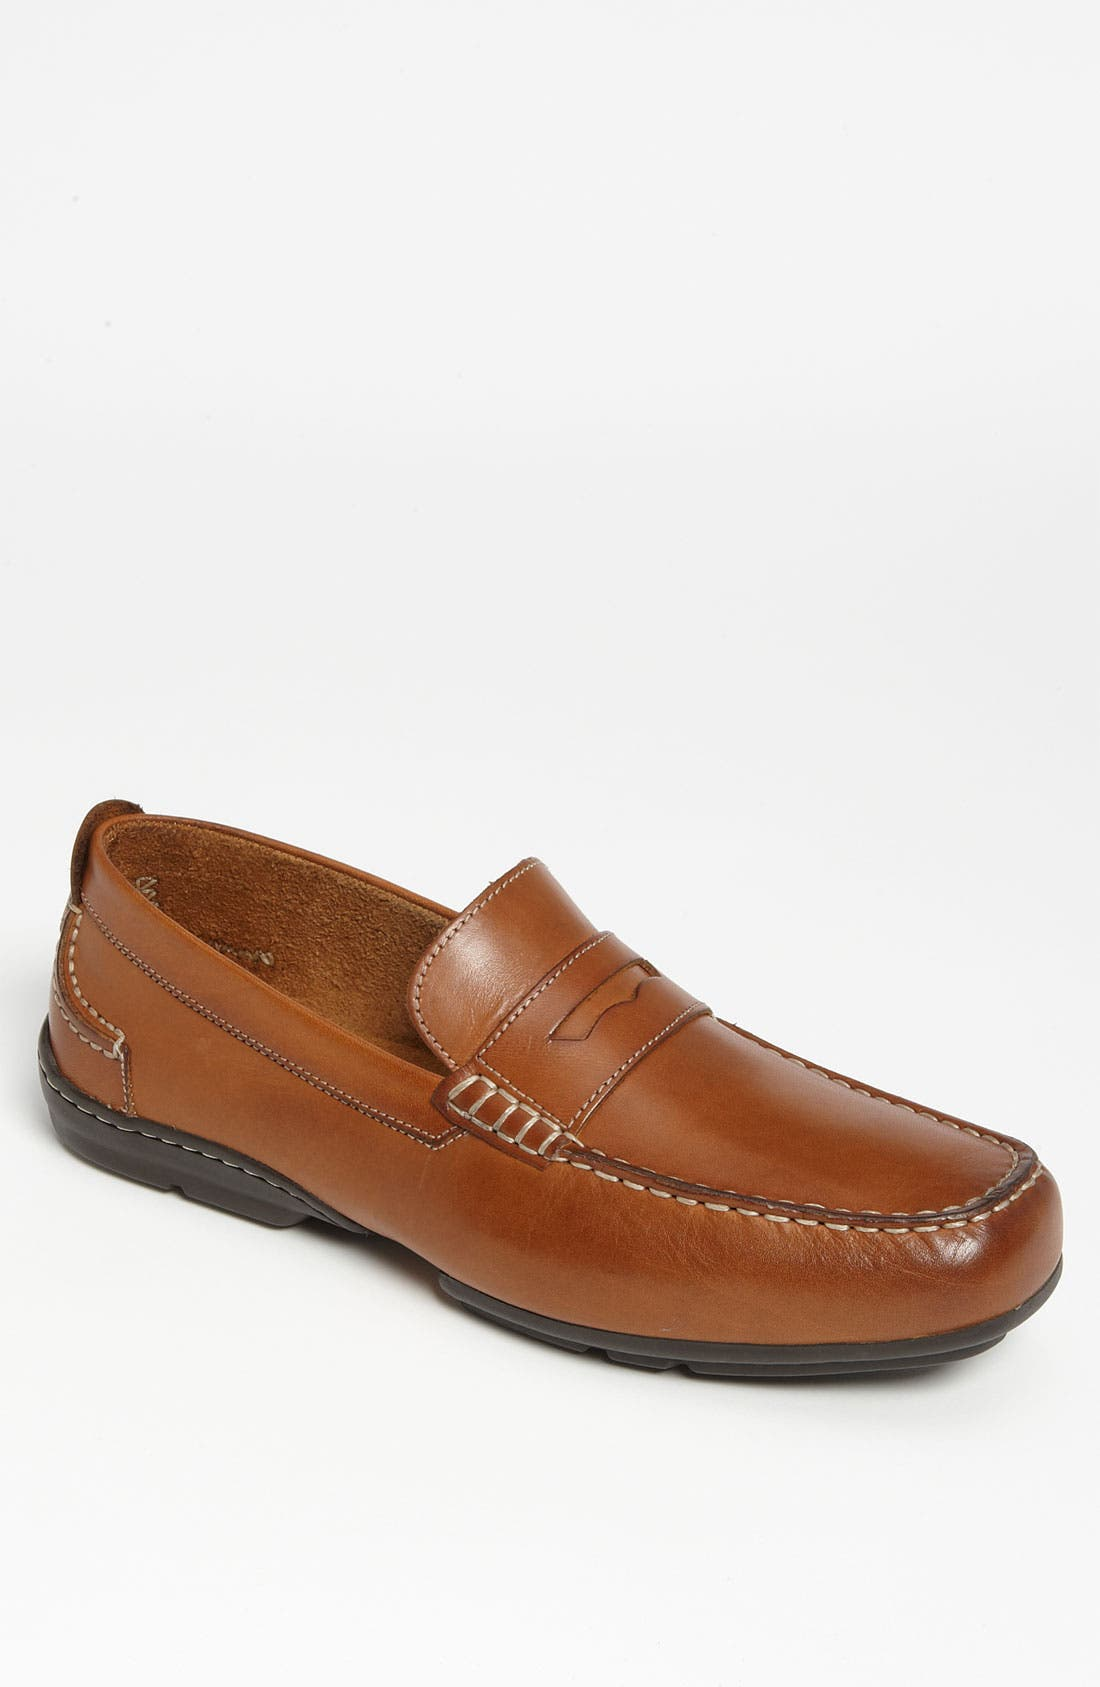 Main Image - Florsheim 'University' Penny Loafer (Online Only)